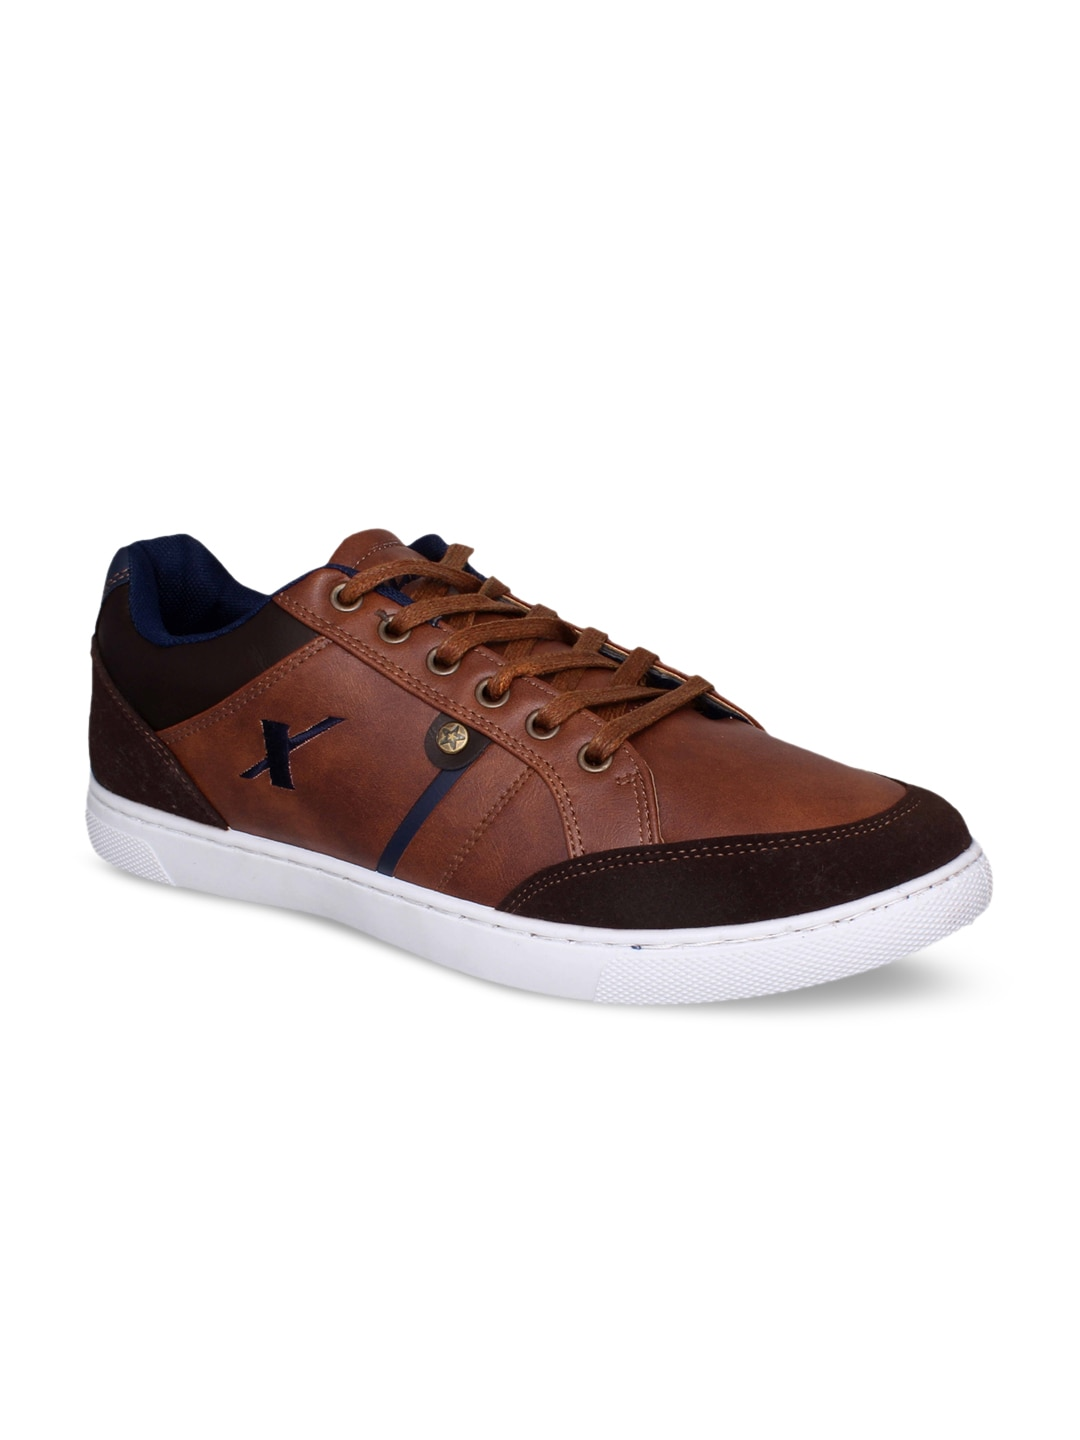 07fa2ac75a50 Irctc Offer Casual Shoes - Buy Irctc Offer Casual Shoes online in India